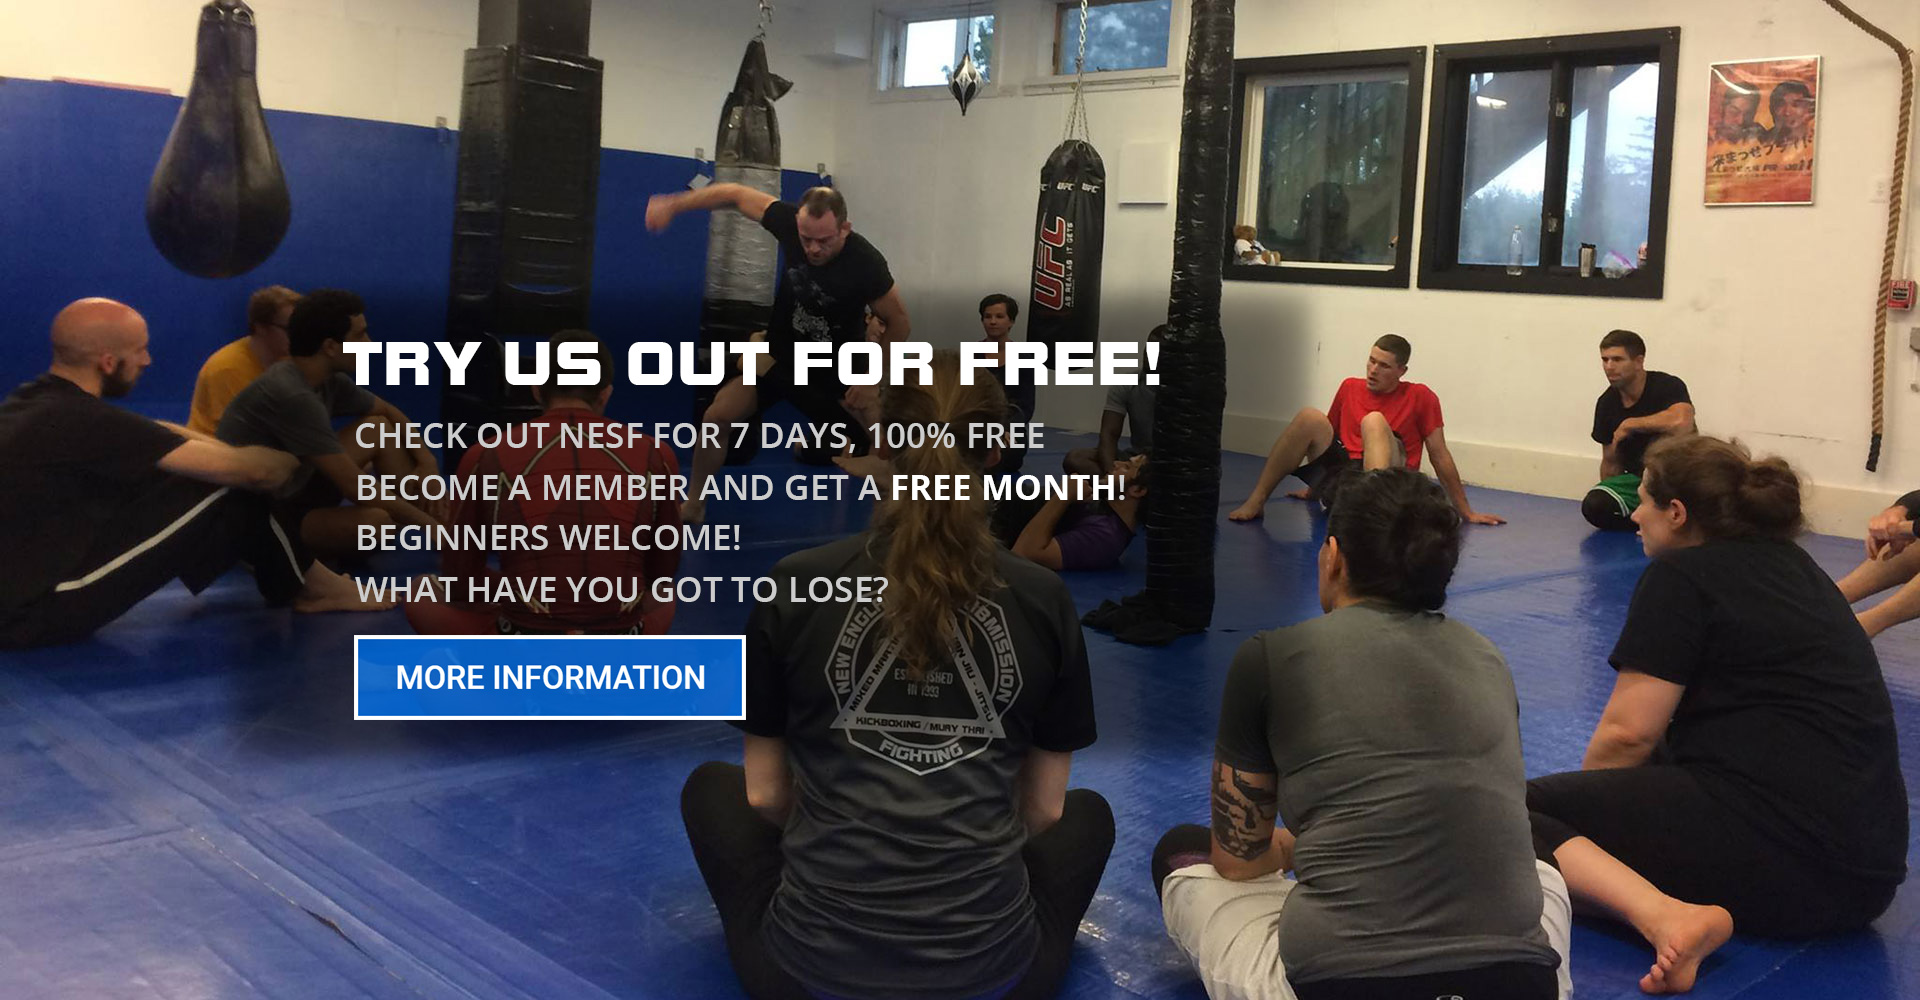 NESF's free week trial period consists of group class instruction and training in Mixed Martial Arts, Kickboxing, Wrestling, and Jiu-Jitsu.